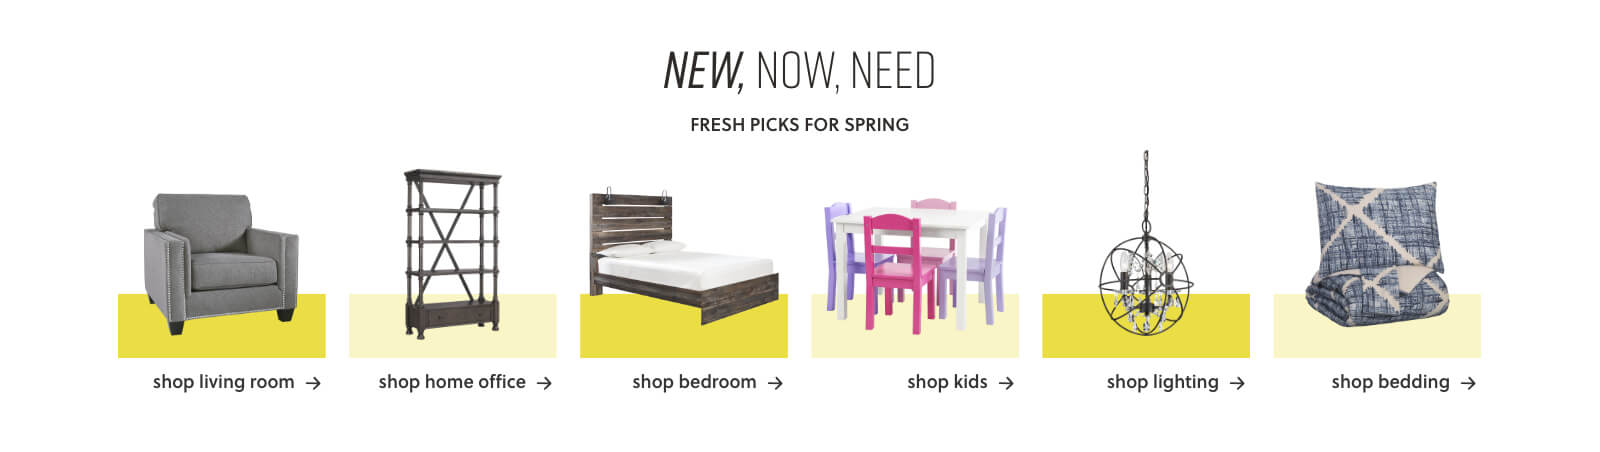 New Living Room Furniture, New Home Office Furniture, New Bedroom Furniture, New Kids Furniture, New Lighting, New Bedding